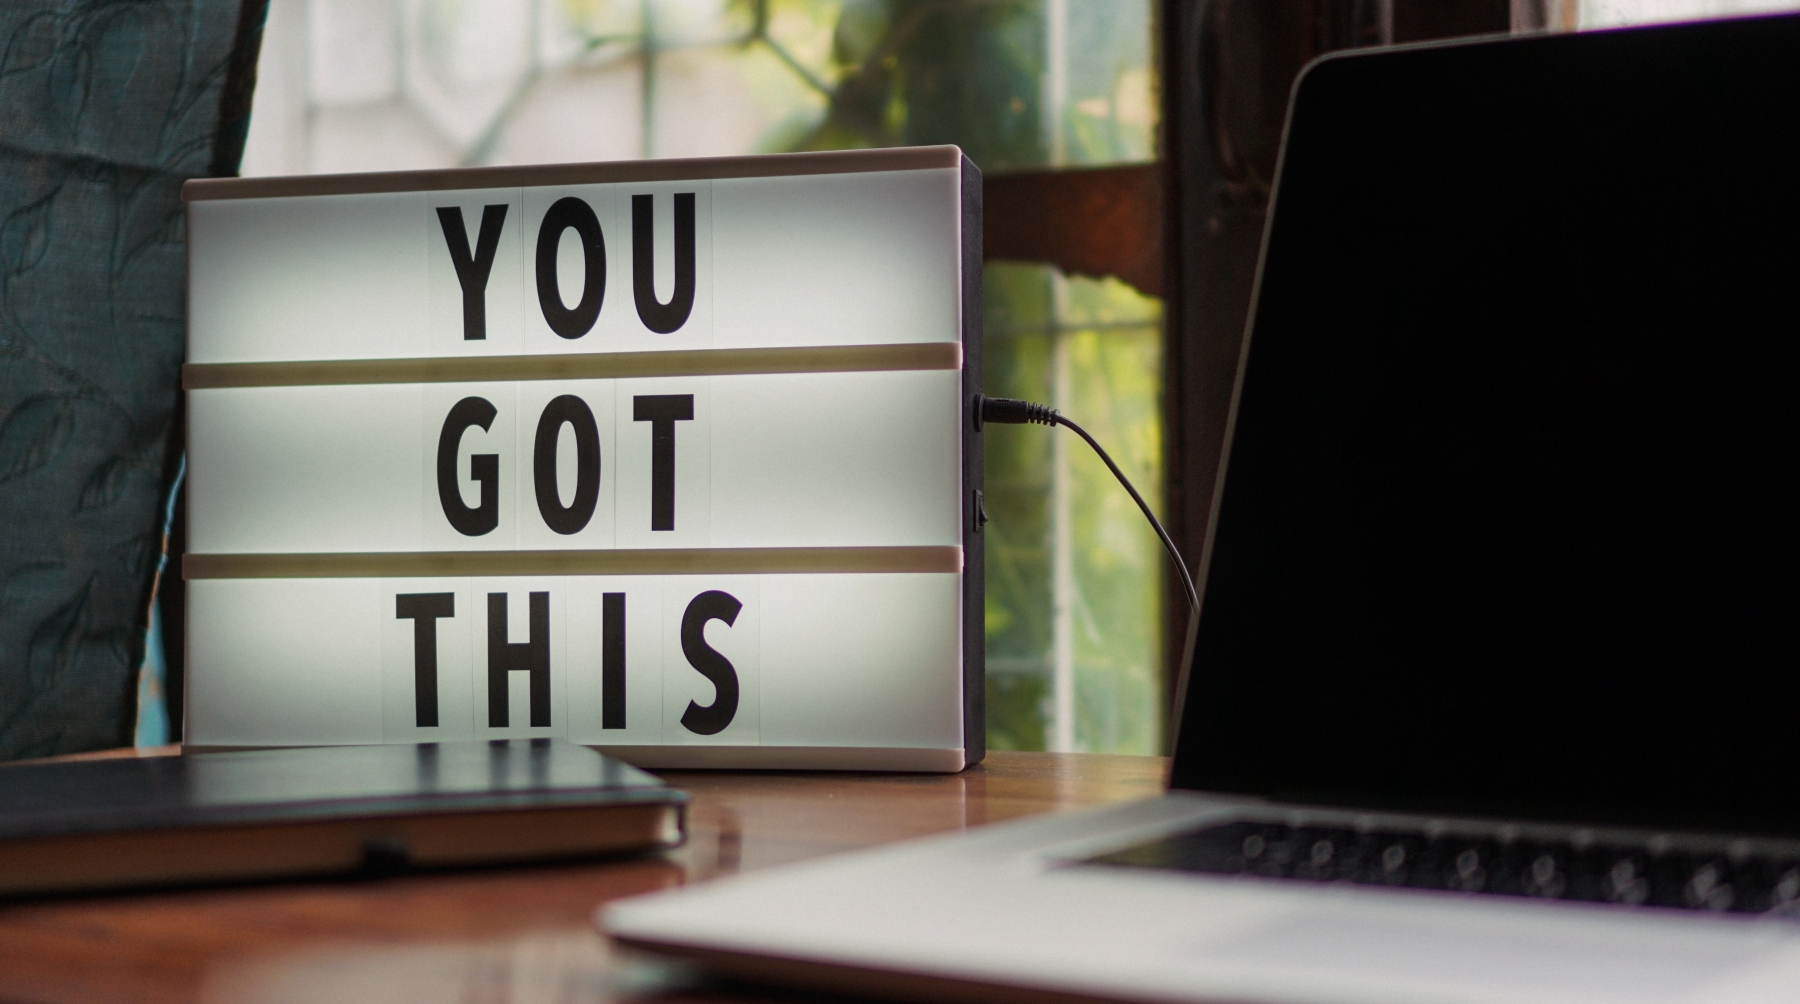 You Got This motivation photo